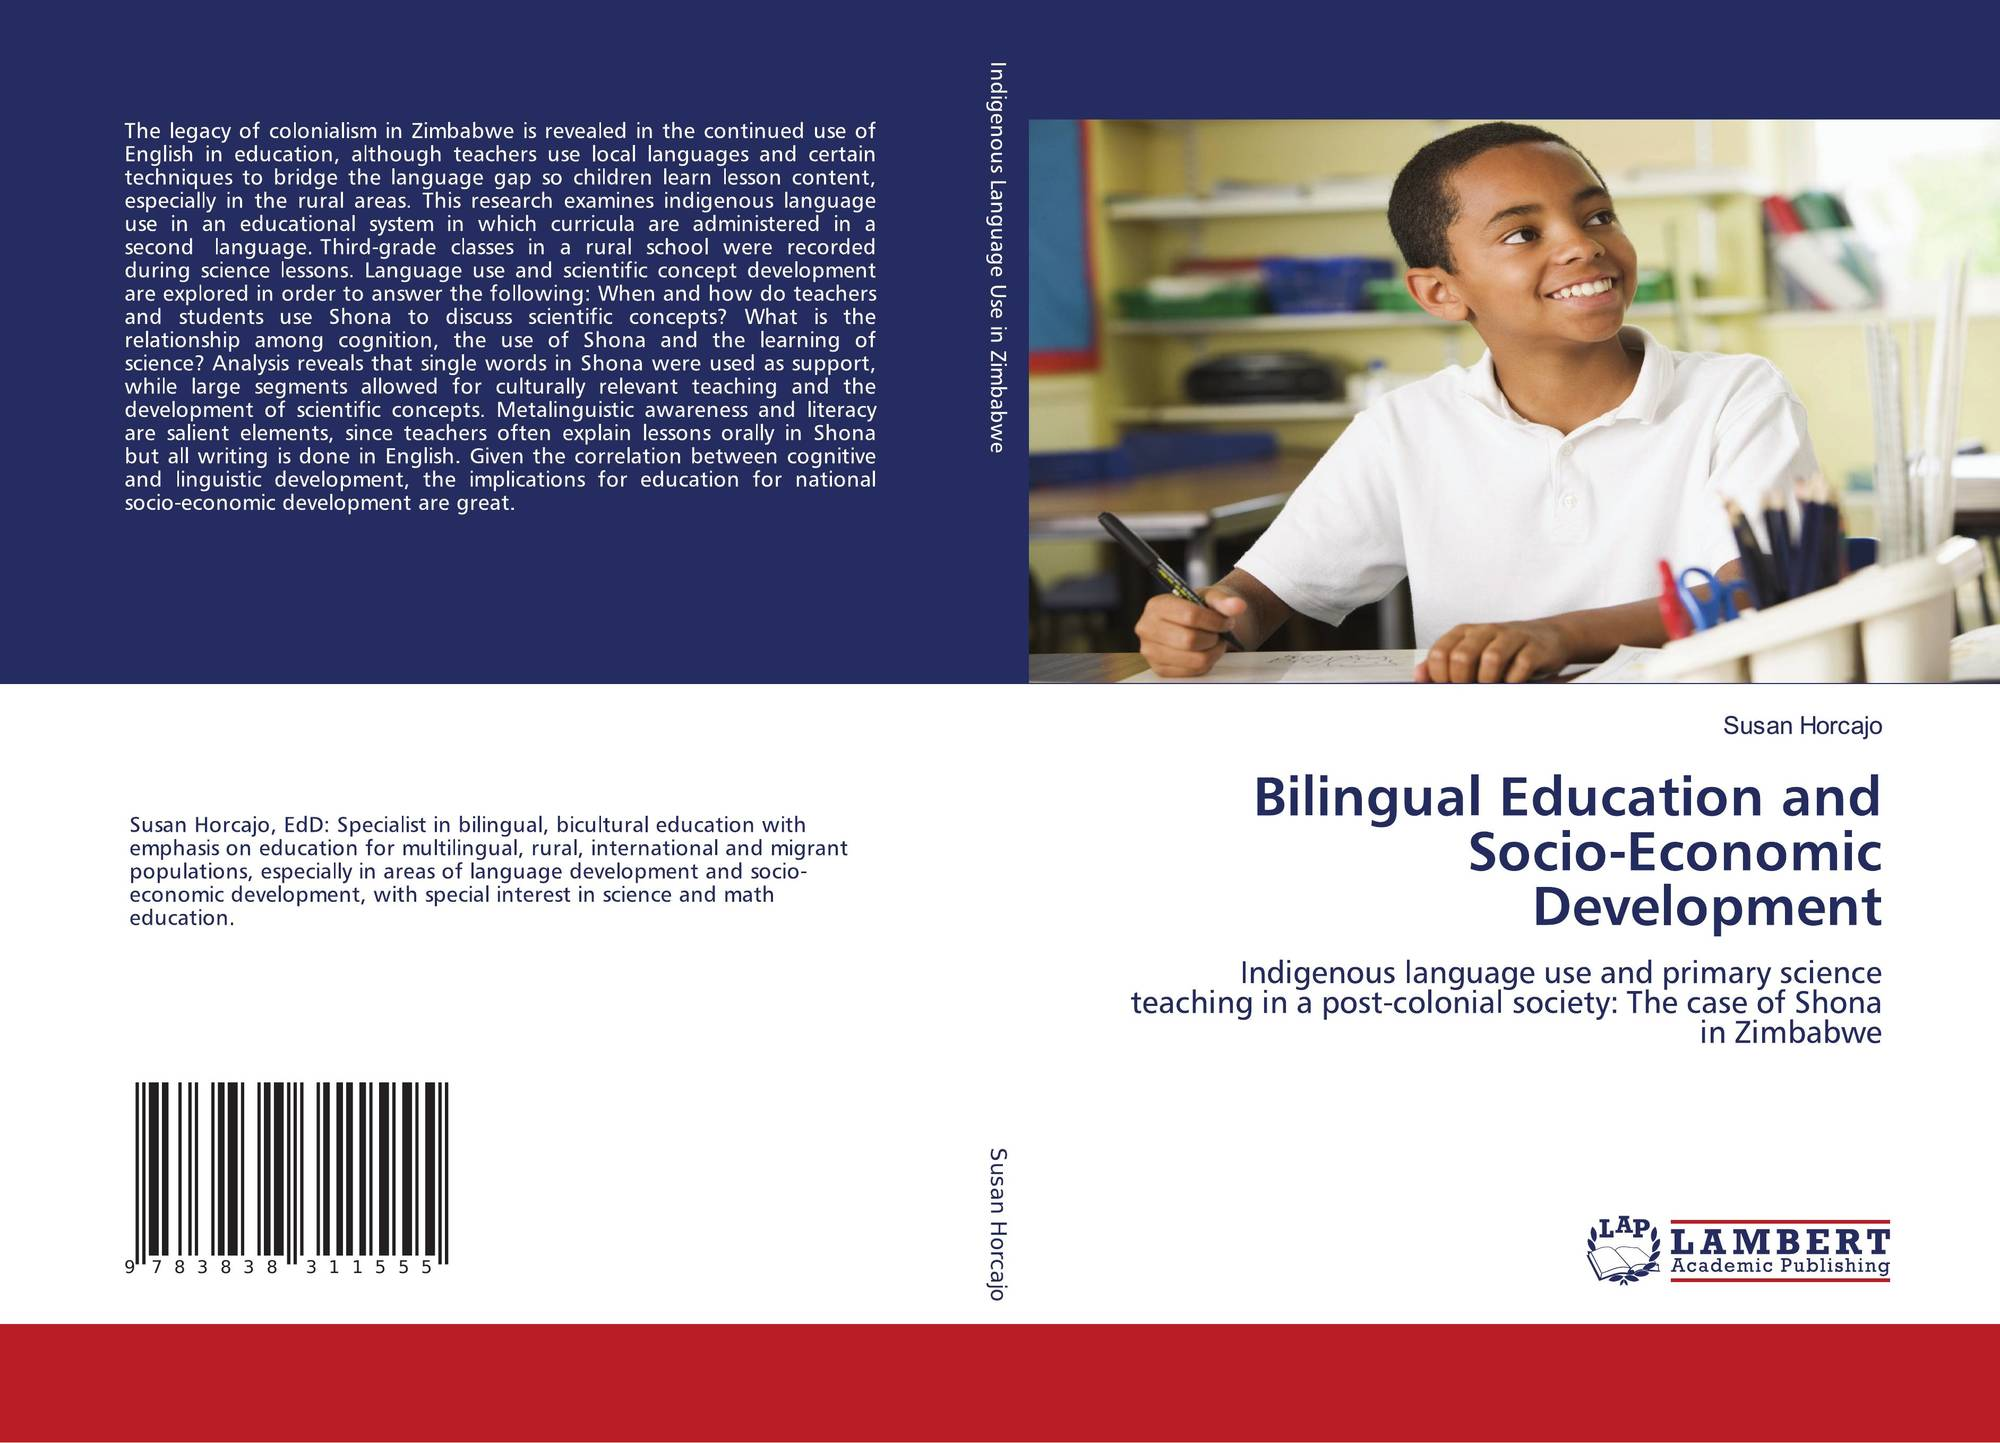 an analysis of the principles of the bilingual education in the high schools Formative evaluation research study conducted at the two bilingual schools initiated two schools guided by these principles bilingual education in israel.